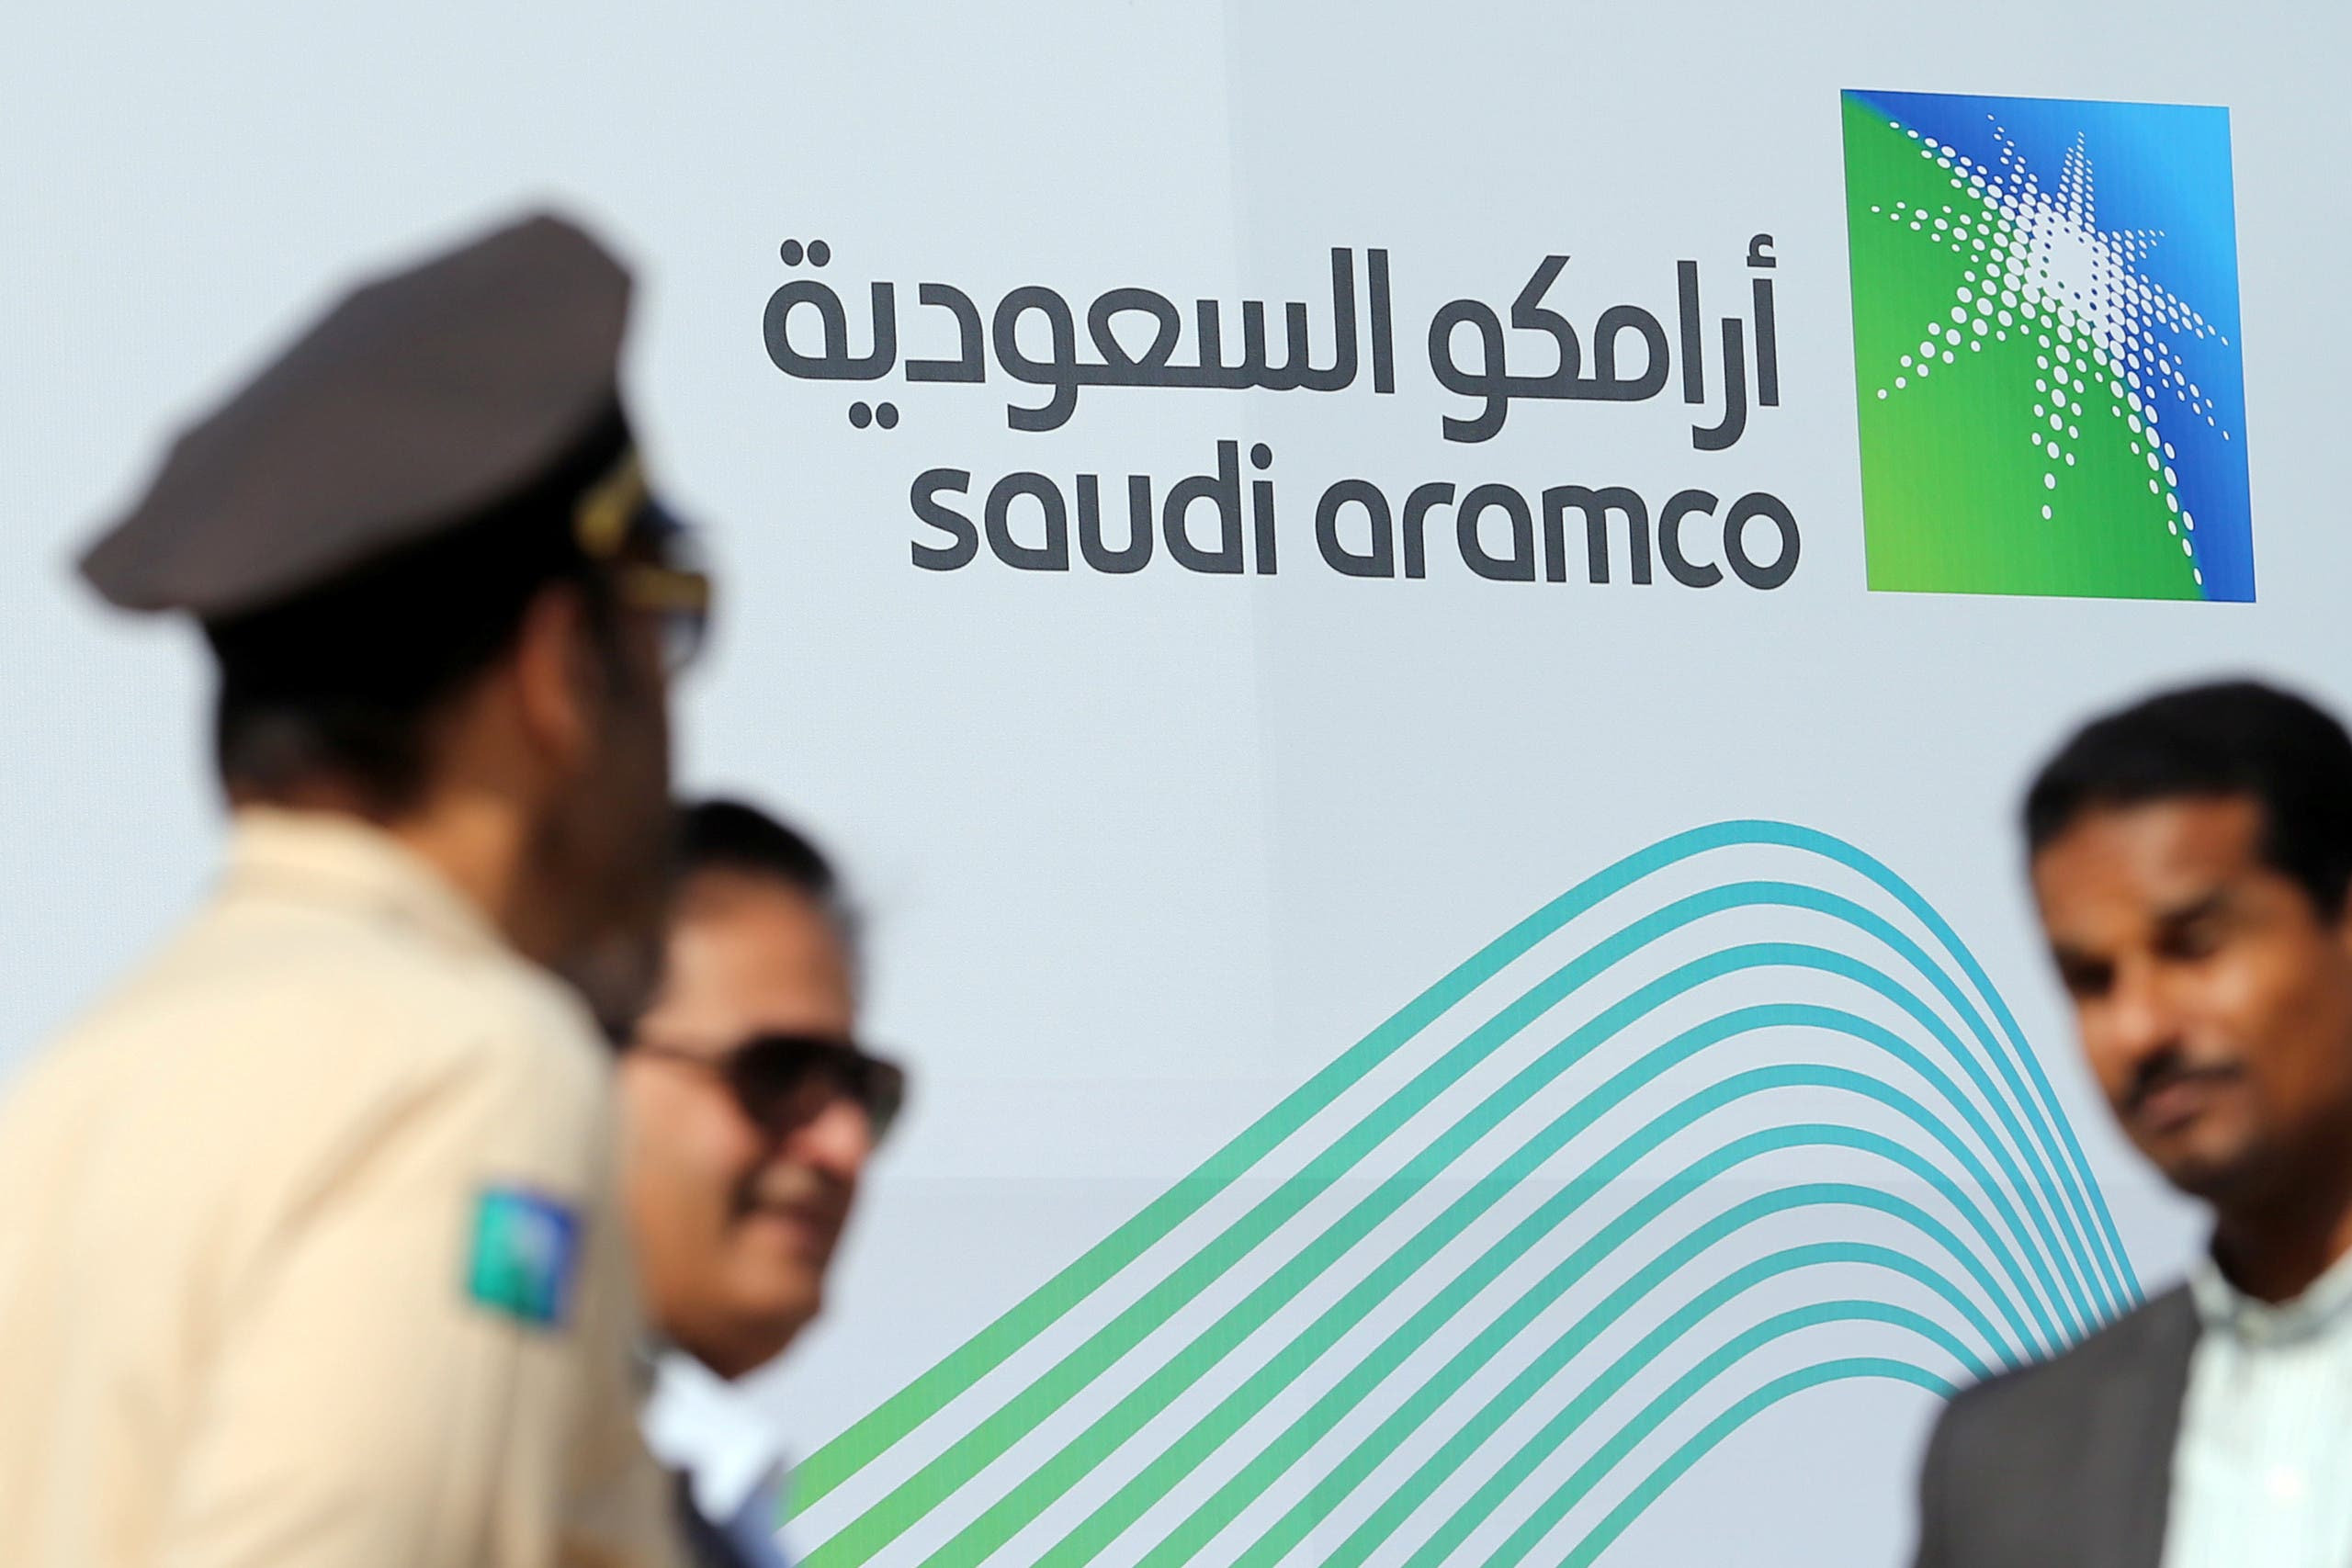 The logo of Aramco is seen as security personnel stand before the start of a press conference by Aramco at the Plaza Conference Center in Dhahran, Saudi Arabia November 3, 2019. (Reuters)